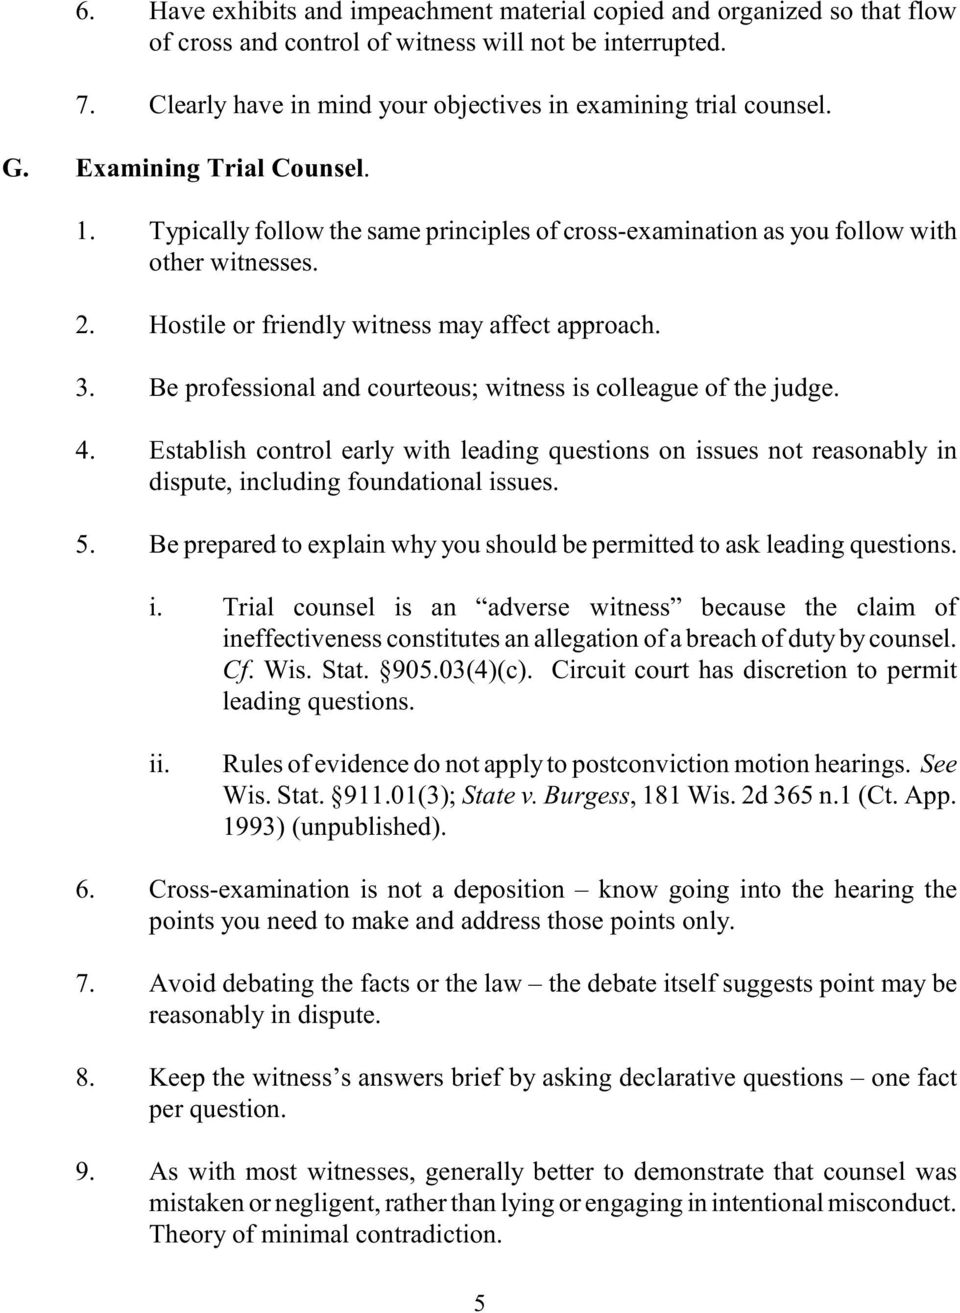 Be professional and courteous; witness is colleague of the judge. 4. Establish control early with leading questions on issues not reasonably in dispute, including foundational issues. 5.